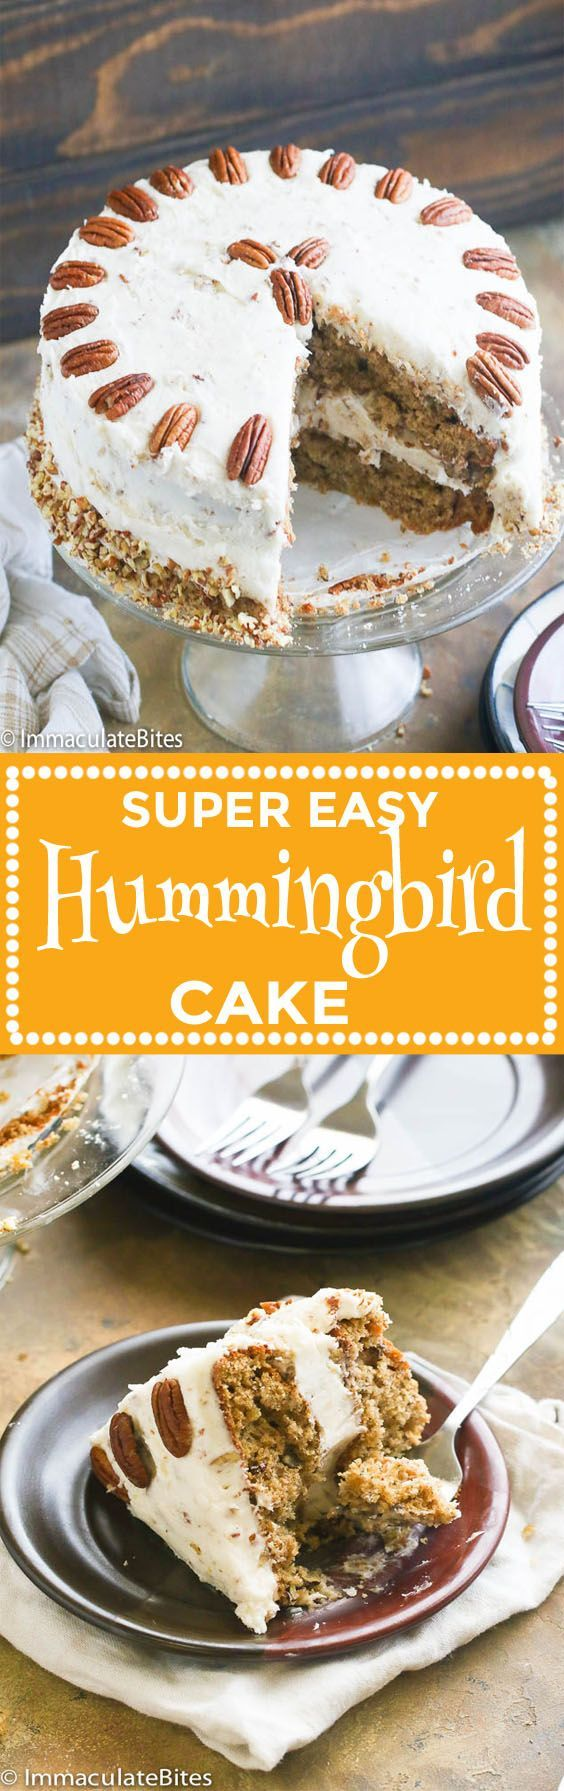 Hummingbird Cake – a super easy, indulgent and stick-to-your-fork moist cake featuring the tropical combination of bananas and crushed pineapples with toasted pecans; generously layered, covered with cream cheese frosting. A classic Southern cake gem! Forget what you're thinking 'cause this cake is not made with hummingbirds. A Southern favorite, this cake …